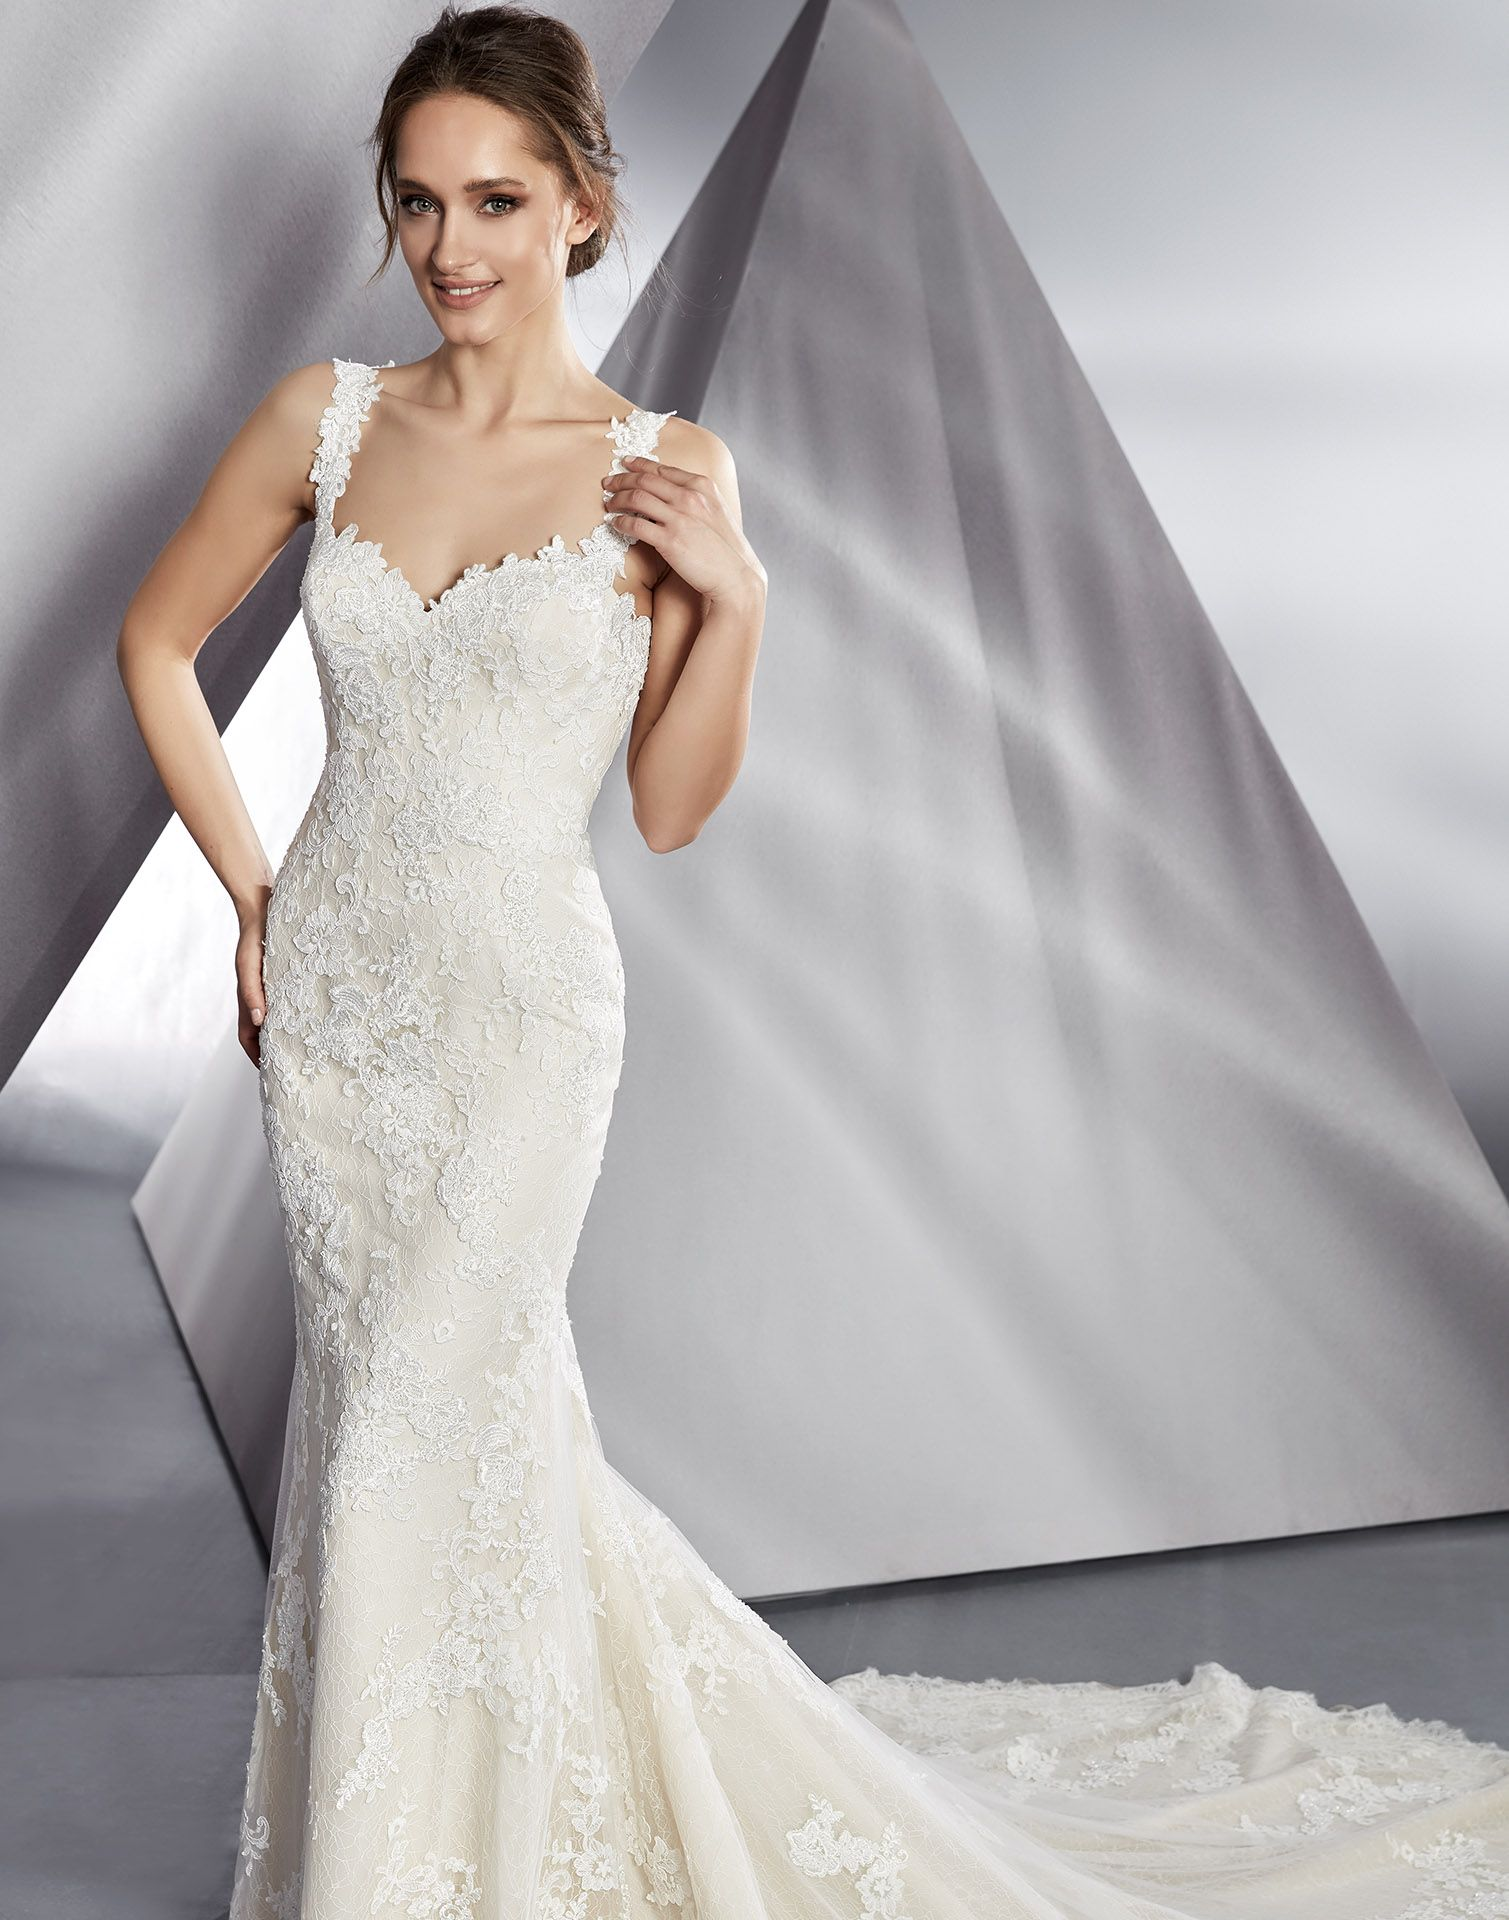 BEAUTIFUL // A full and luxurious sleek lace wedding dress with an ...